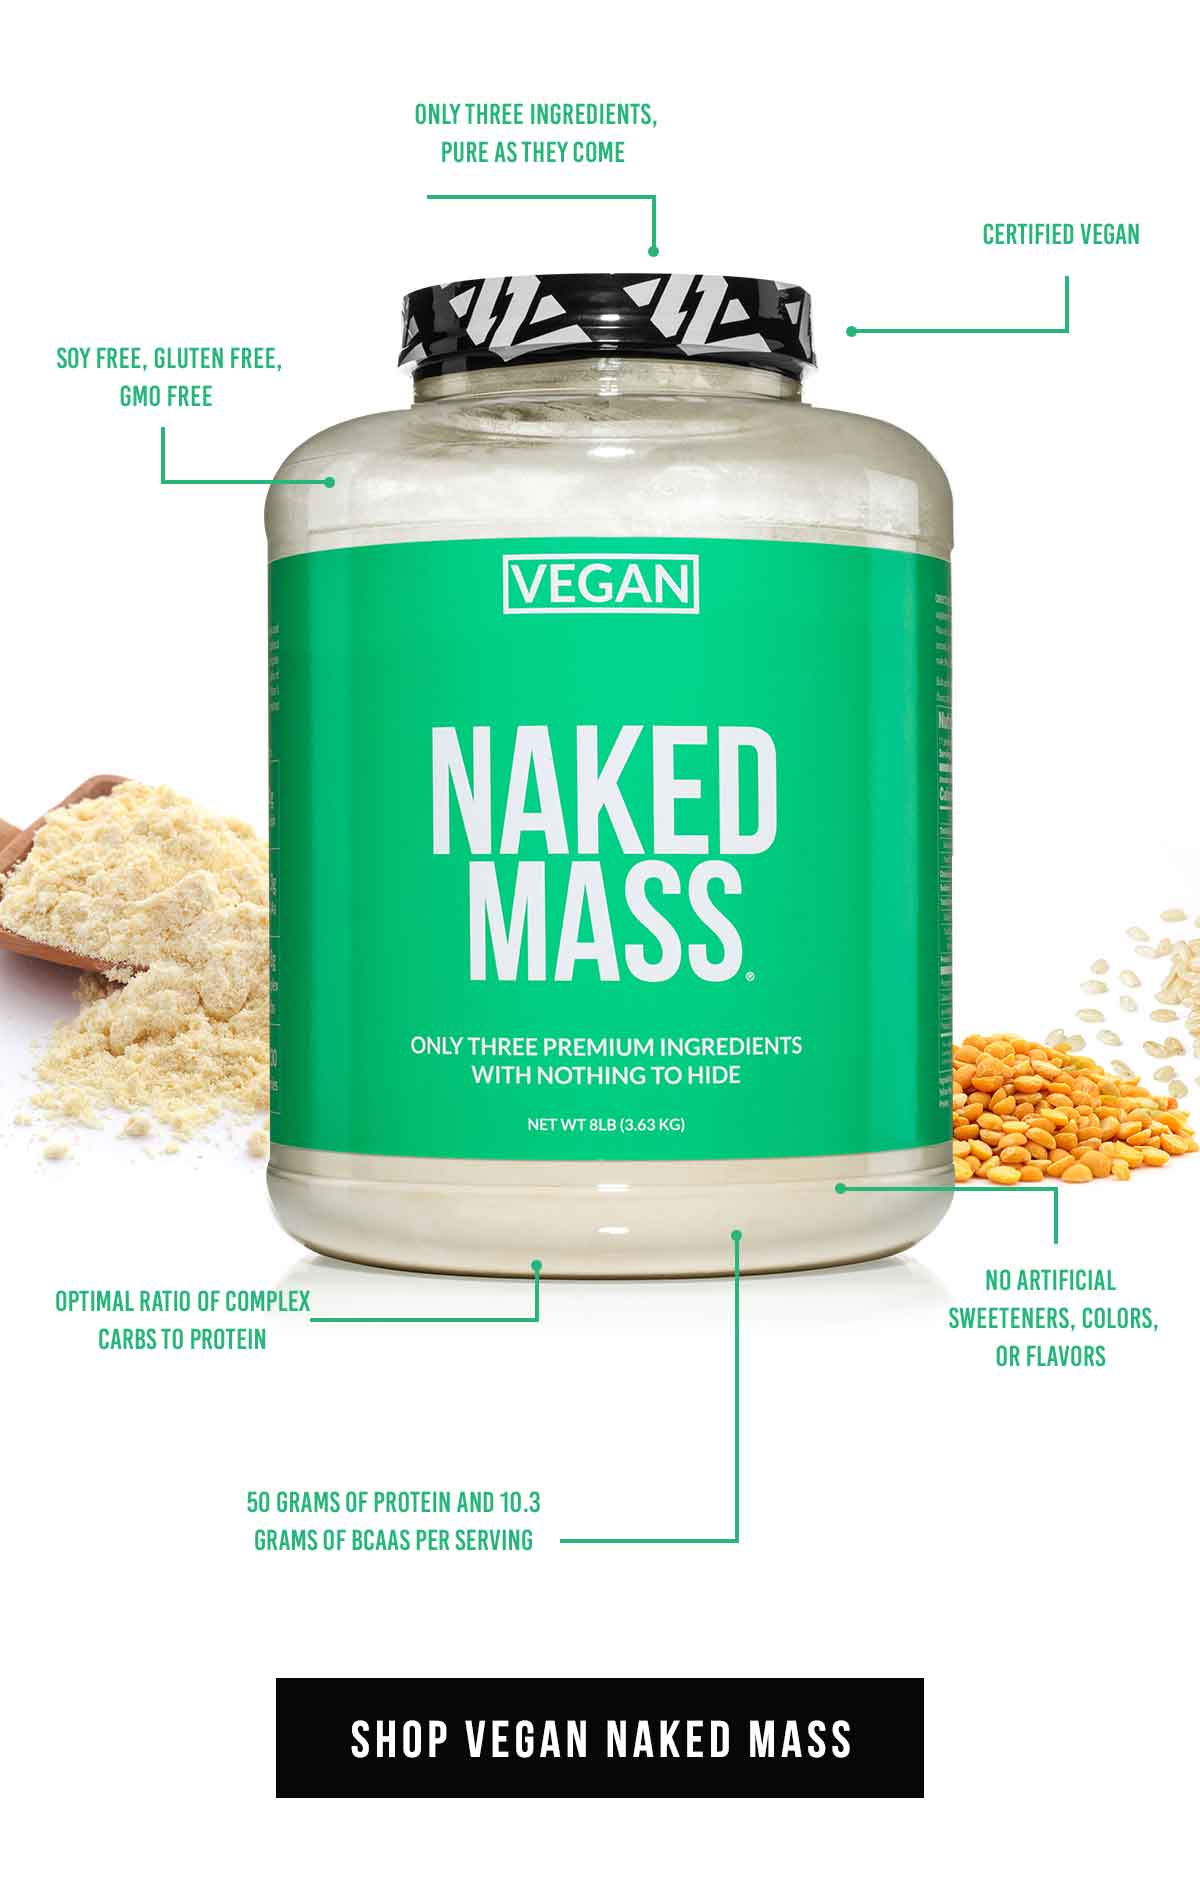 SHOP VEGAN MASS | Certified vegan | Only three ingredients, pure as they come | Optimal ratio of complex carbs to protein | No artificial sweeteners, colors, or flavors | 50 grams of protein and 10.3 grams of BCAAs per serving | Soy free, gluten free, GMO free